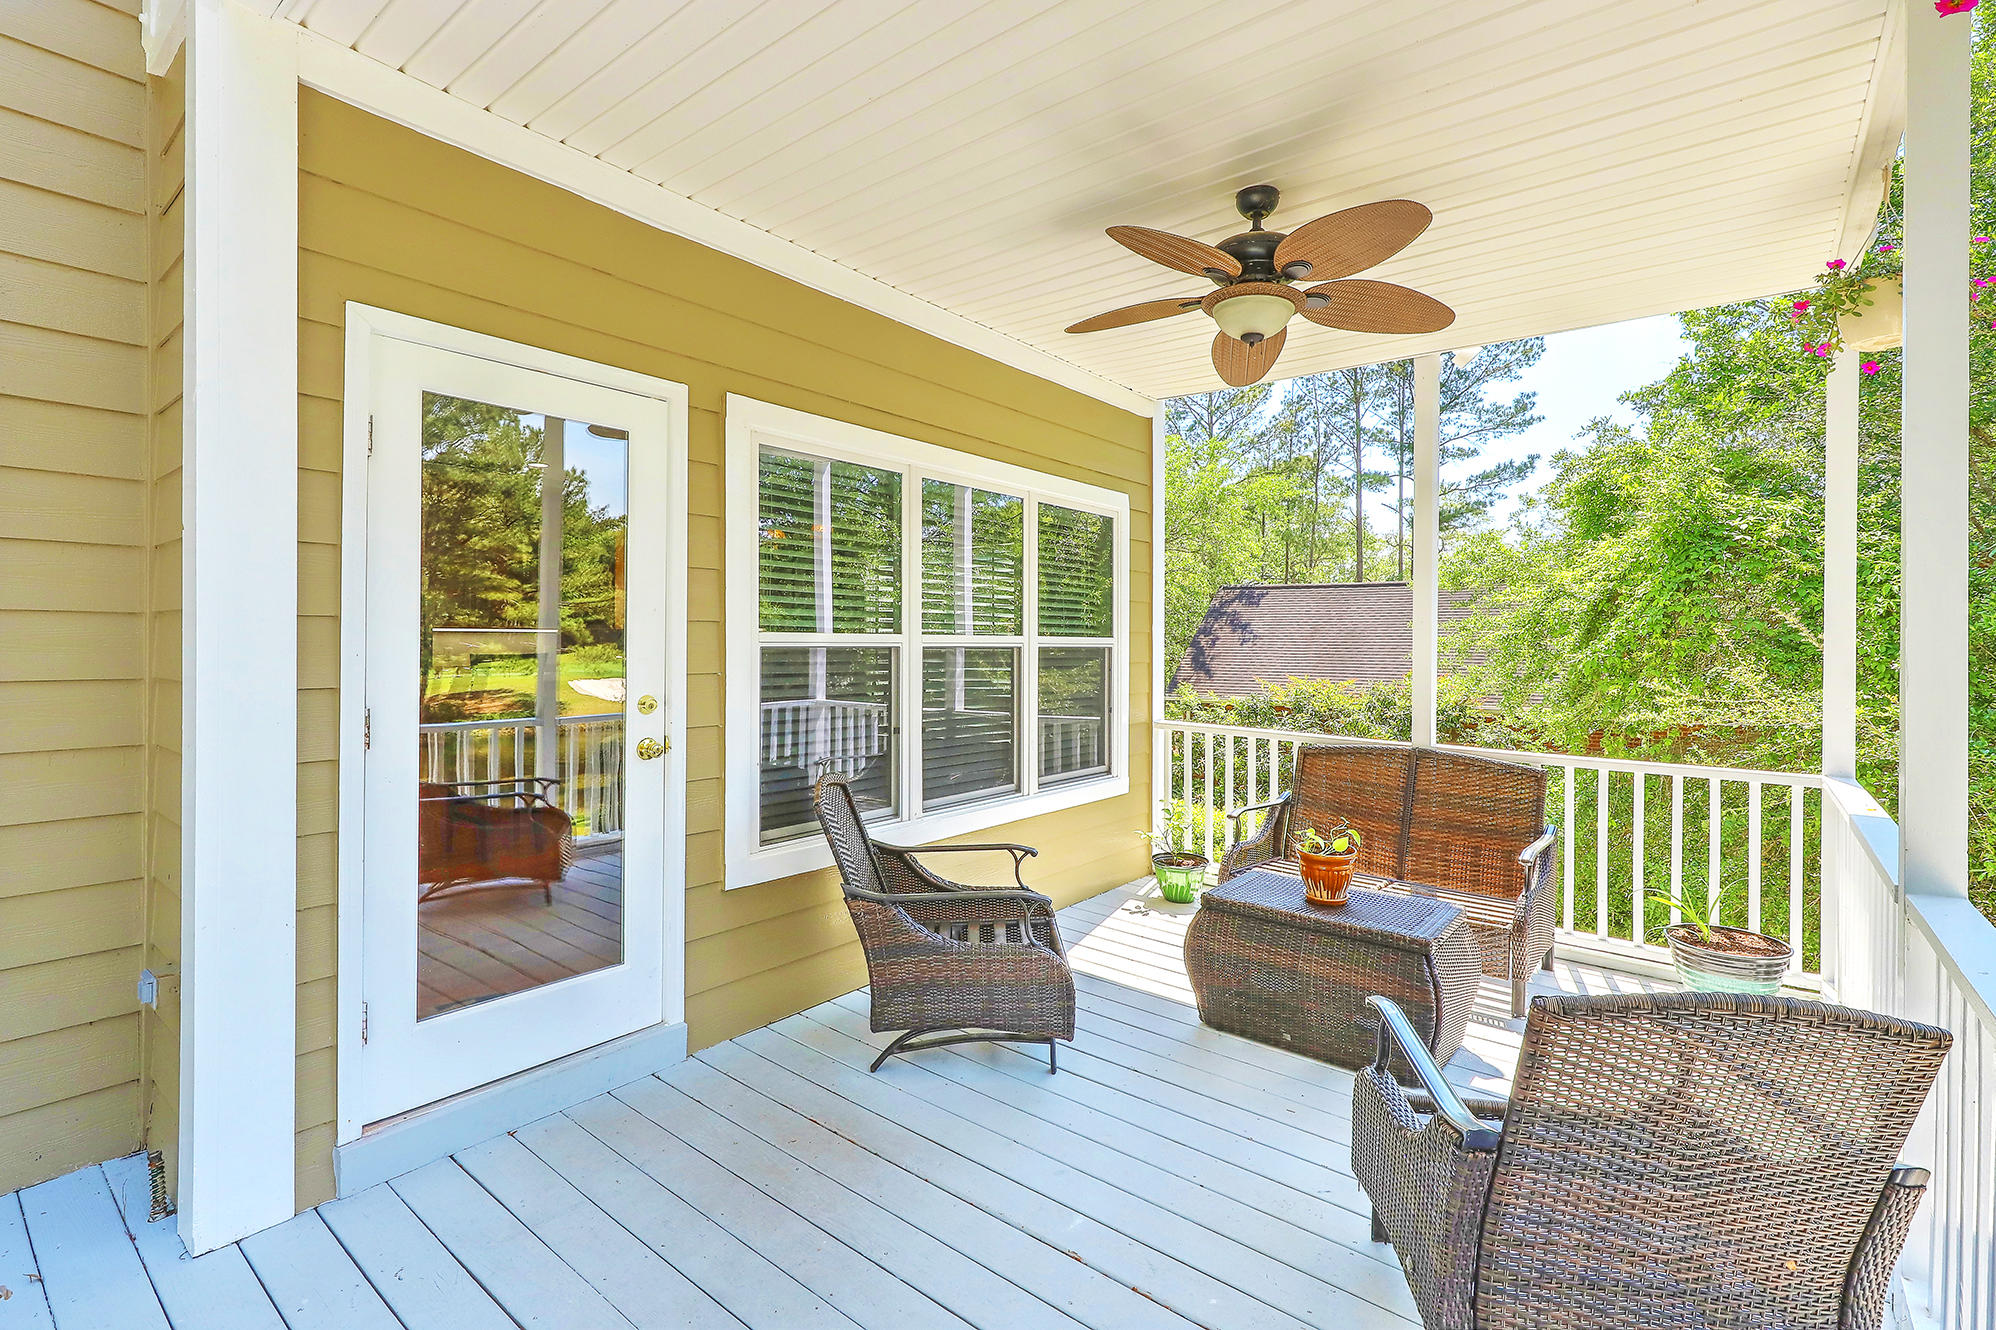 Stono Ferry Homes For Sale - 5104 St Ann, Hollywood, SC - 49